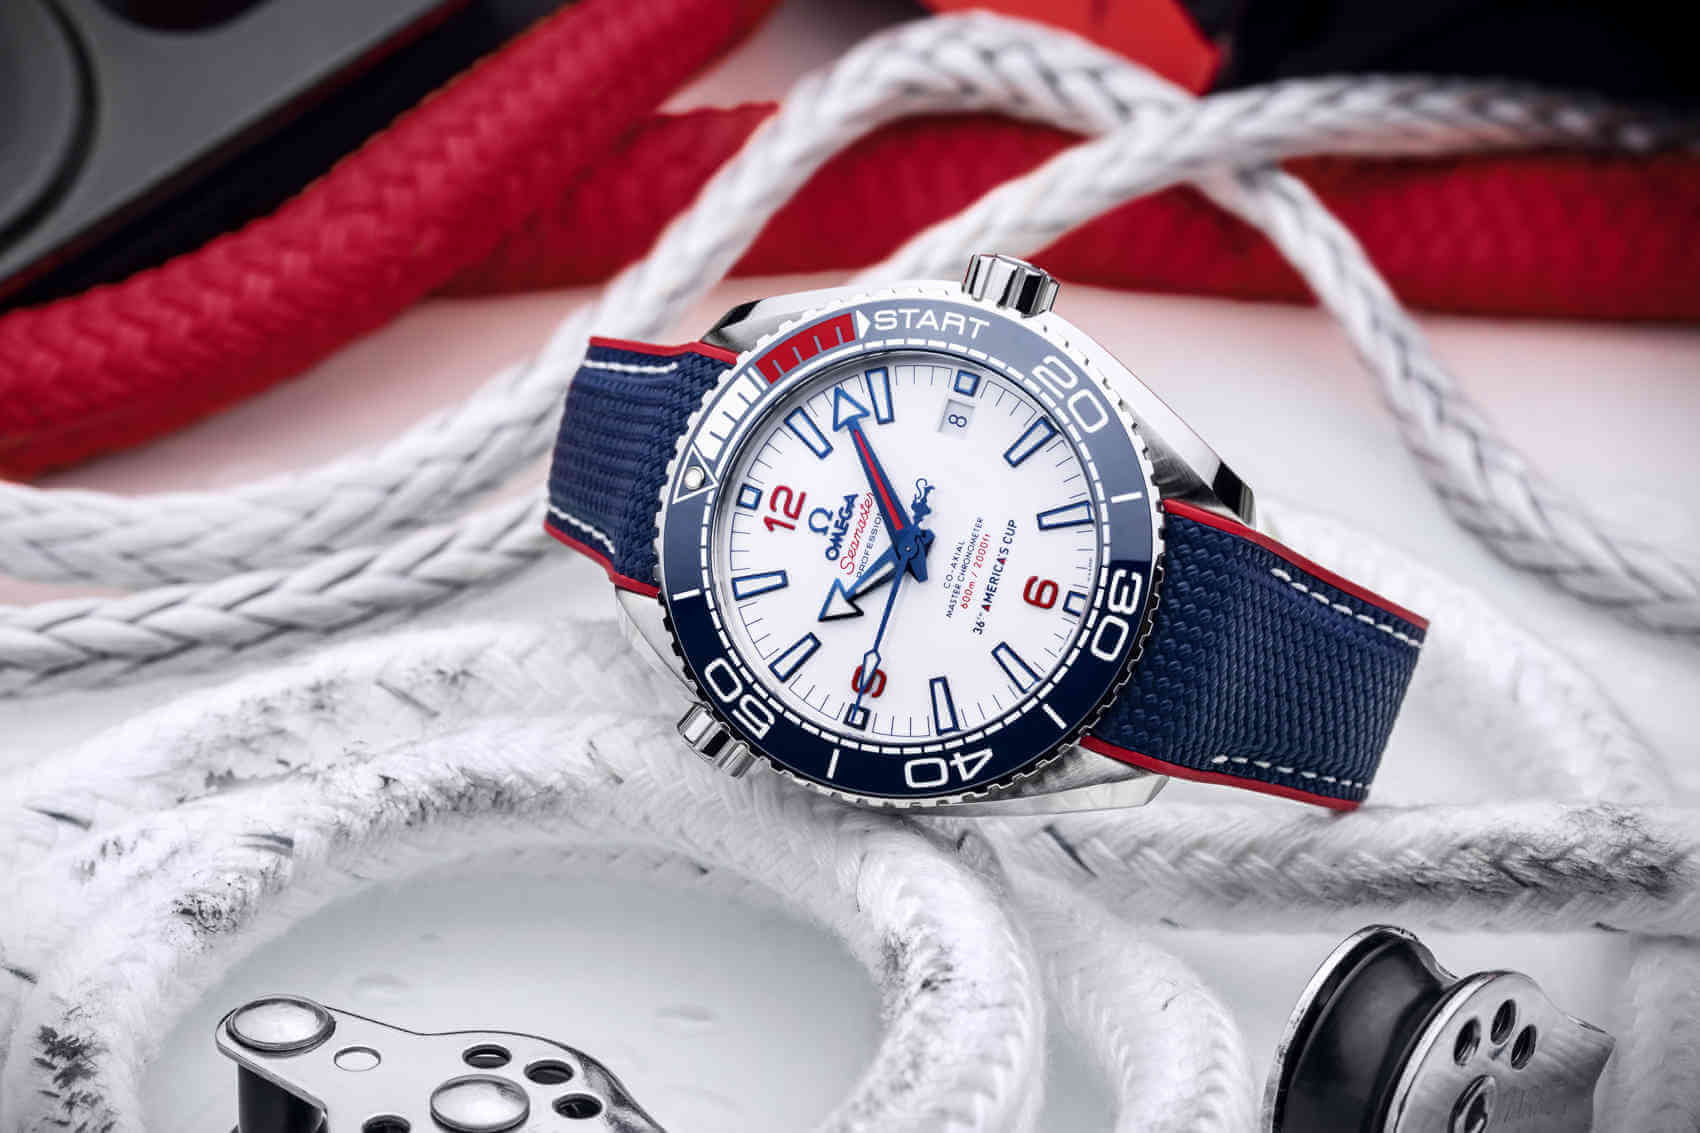 Omega Seamaster Planet Ocean 36th America's Cup lado inc